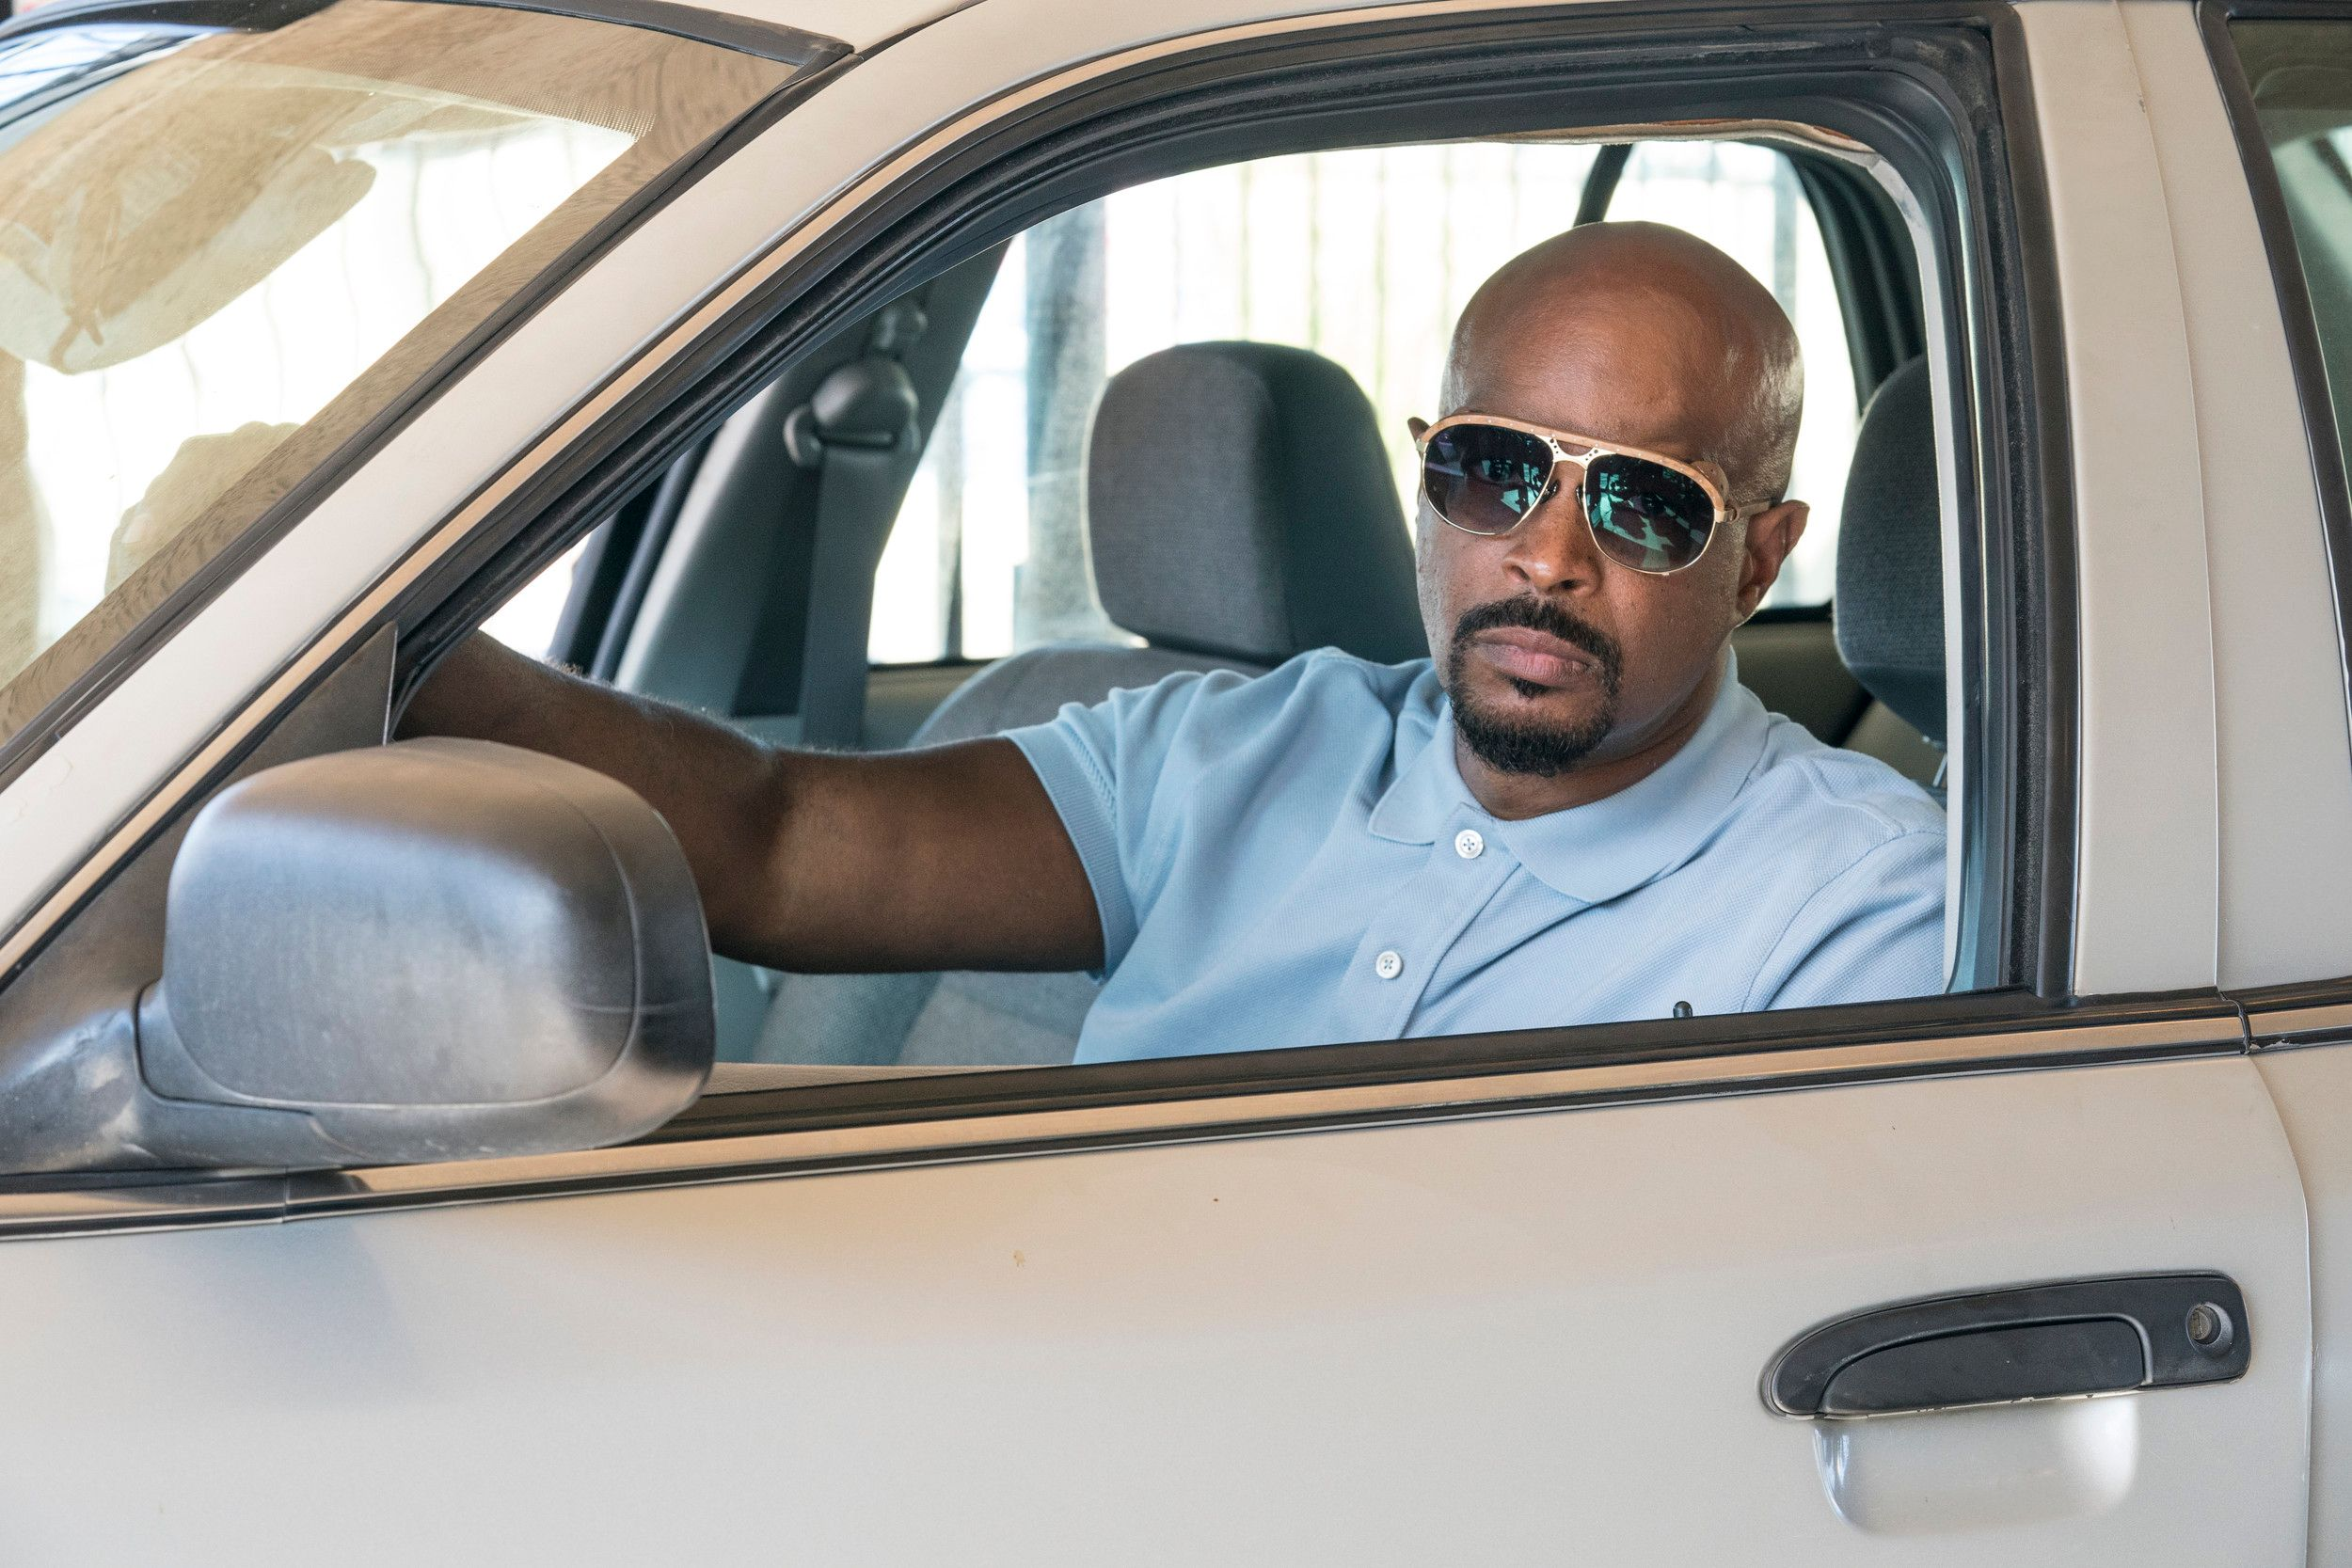 Will 'Lethal Weapon' Be Canceled After Damon Wayans Exit?